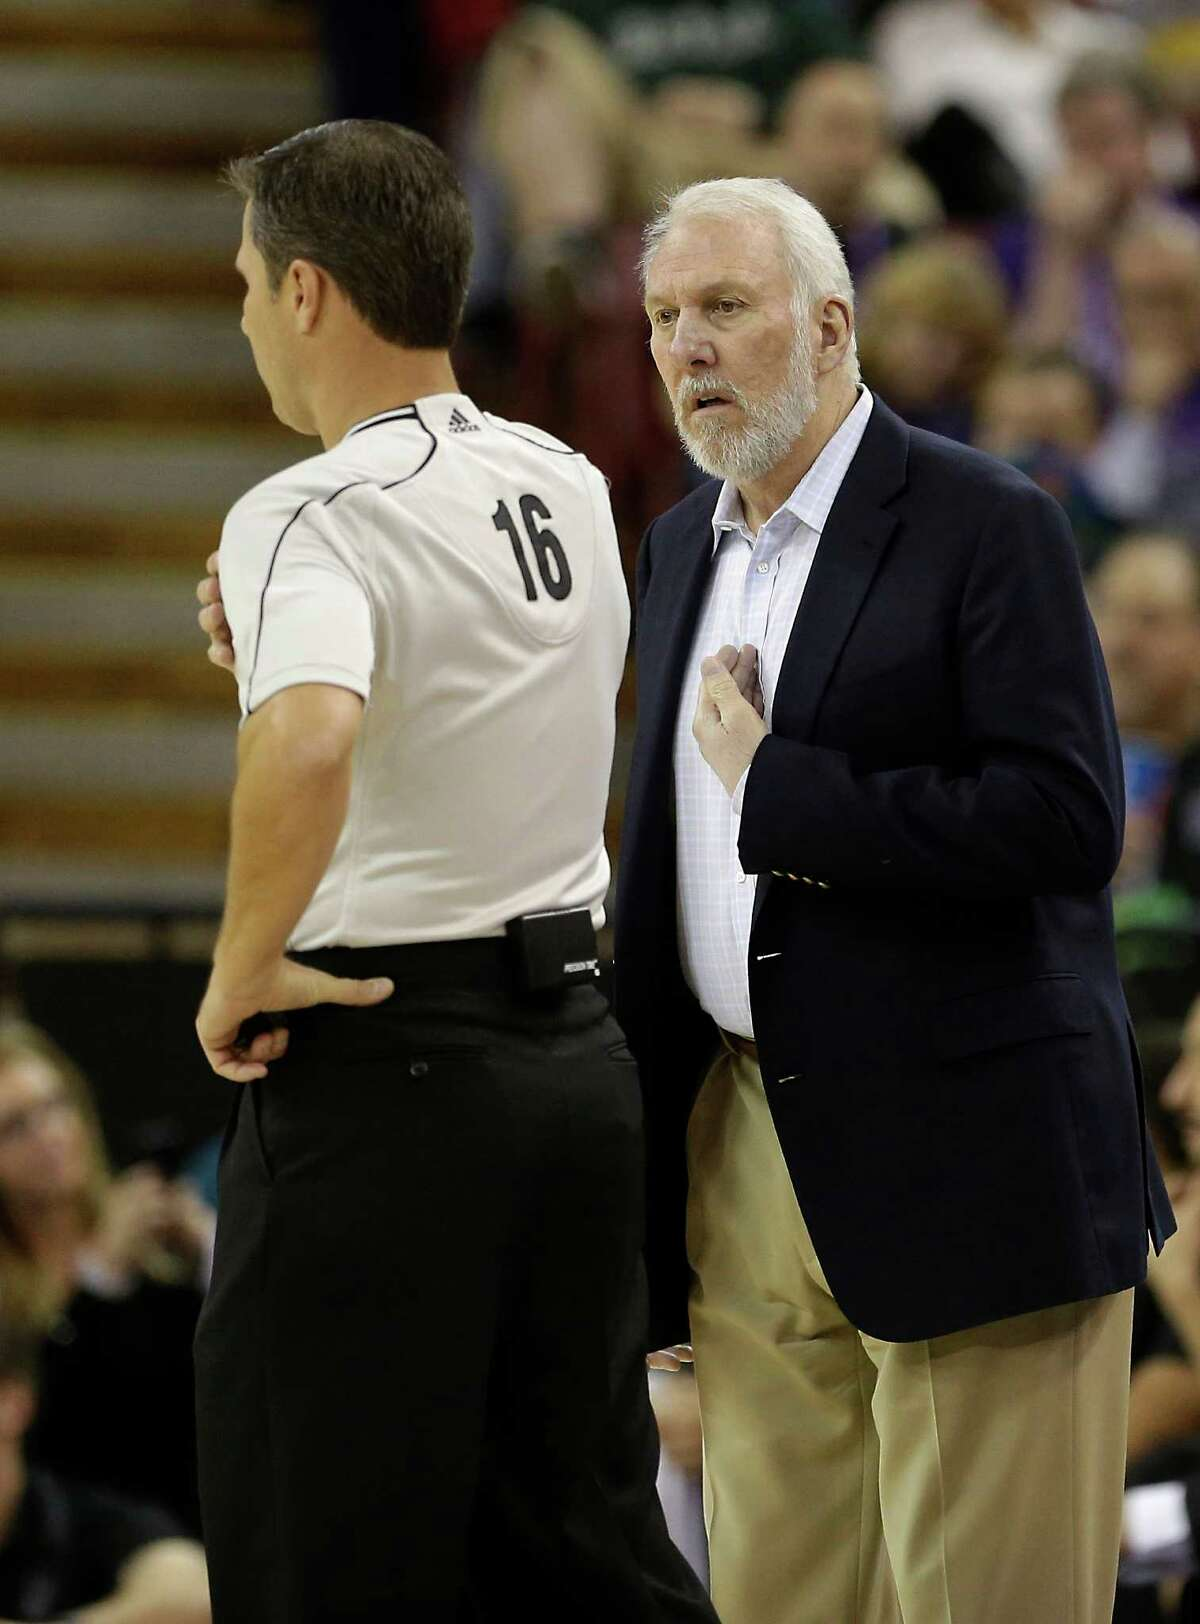 San Antonio Spurs head coach Gregg Popovich, questions Official David Guthrie about a call during the first quarter of an NBA basketball game against Sacramento Kings in Sacramento, Calif., Saturday, Nov. 15, 2014.